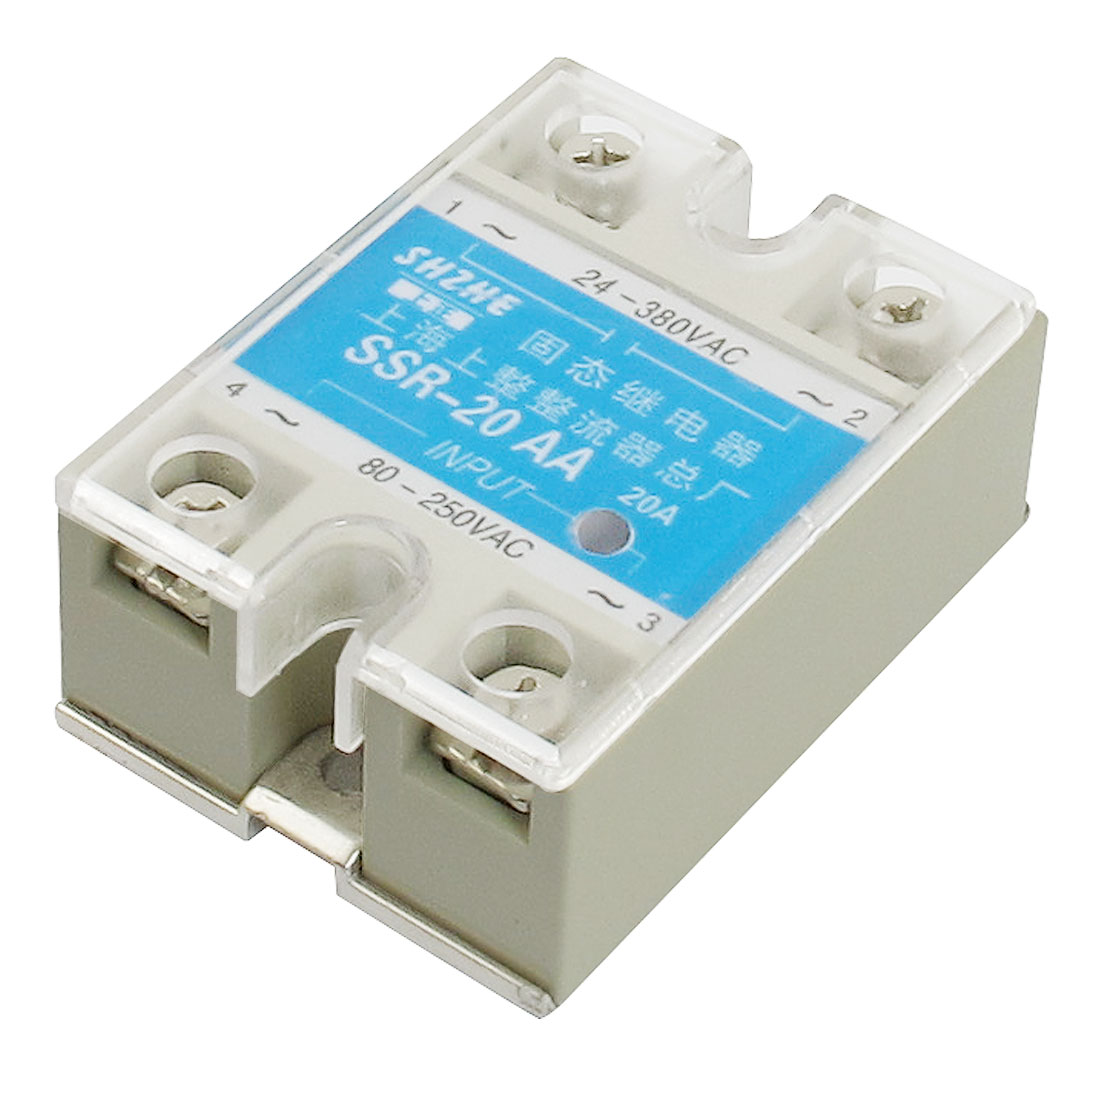 SSR-20AA AC to AC Covered Solid State Module Relay AC 80-250V AC 24-380V